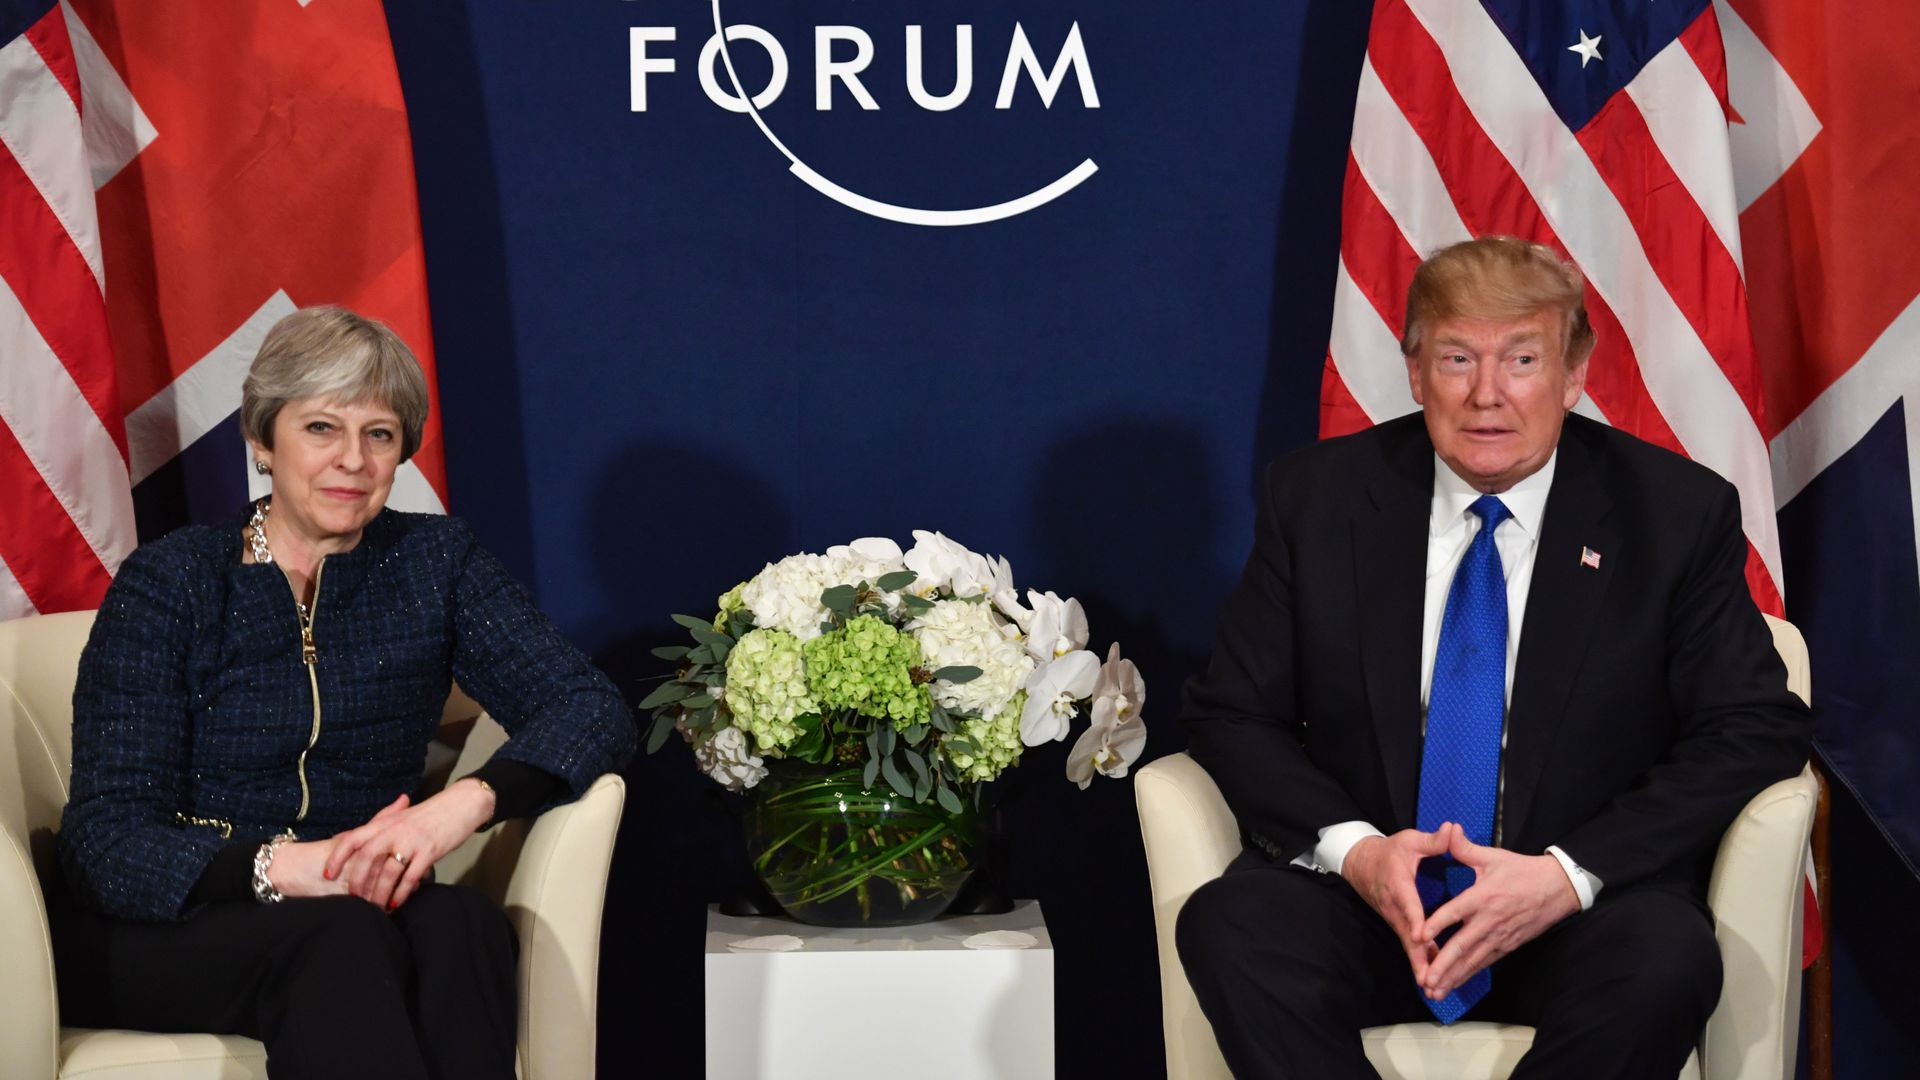 Theresa May and Donald Trump meet at the World Economic Forum in January